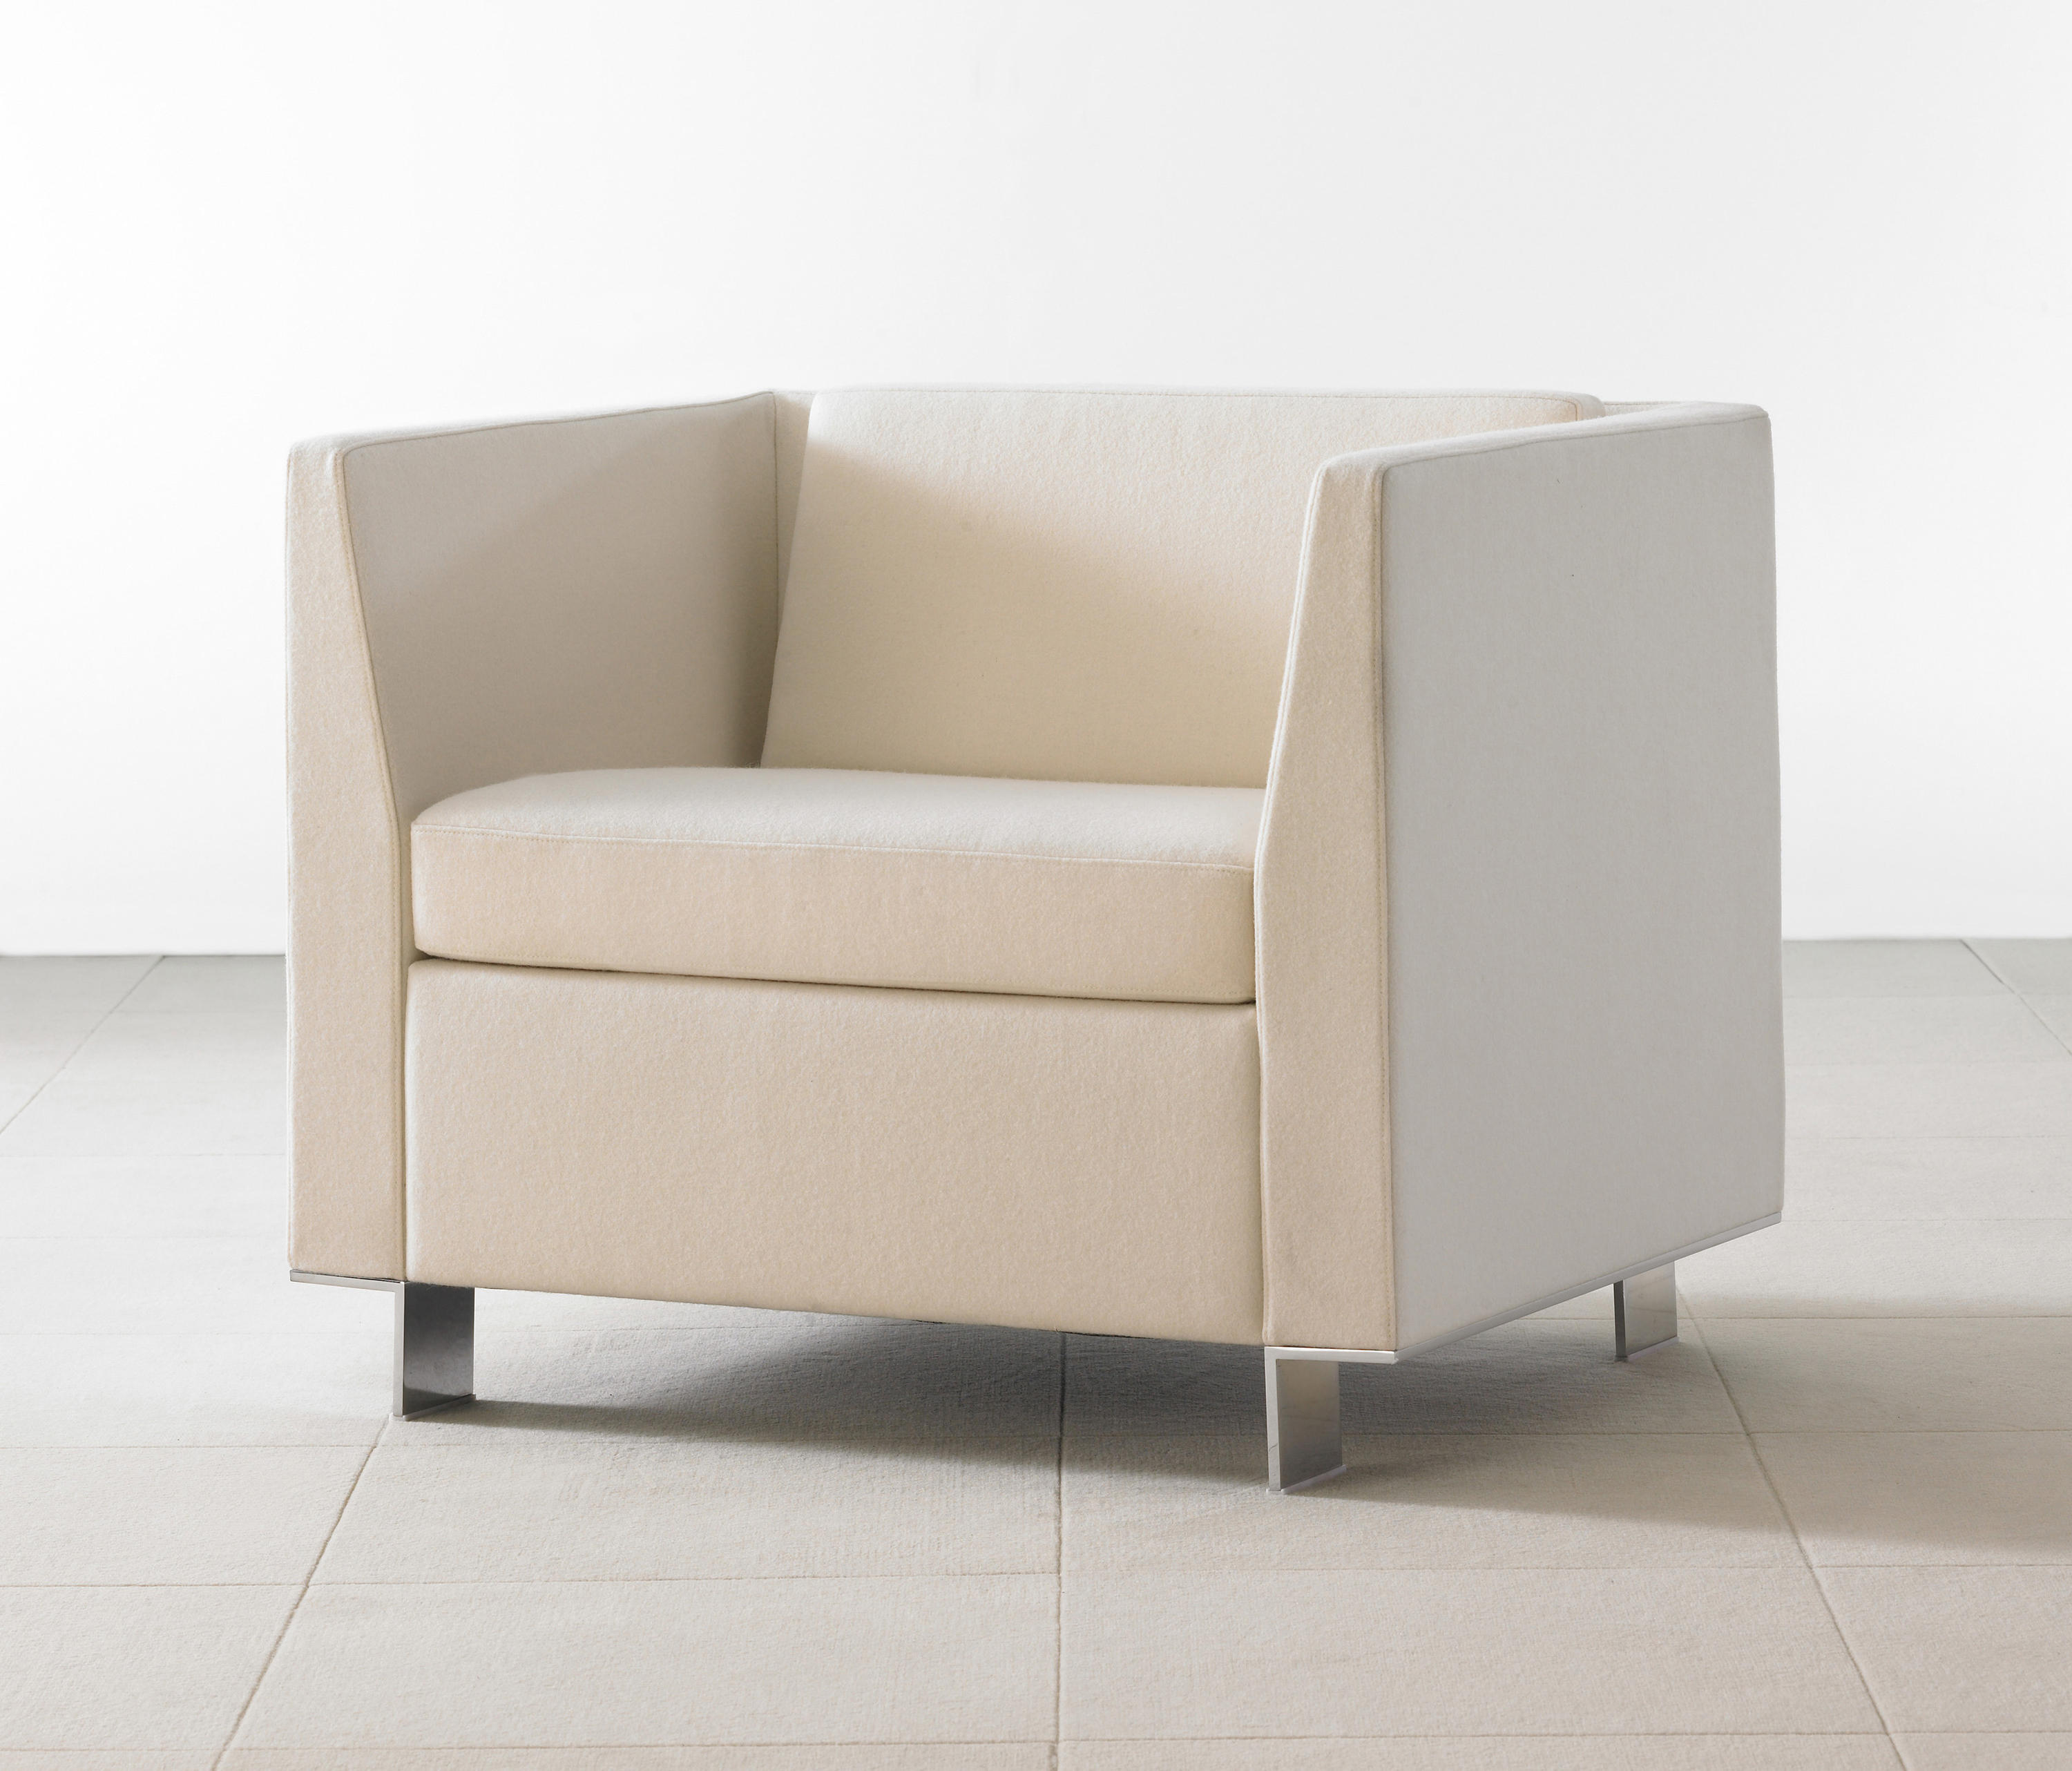 Vignette lounge chairs from teknion architonic for Furniture 08054